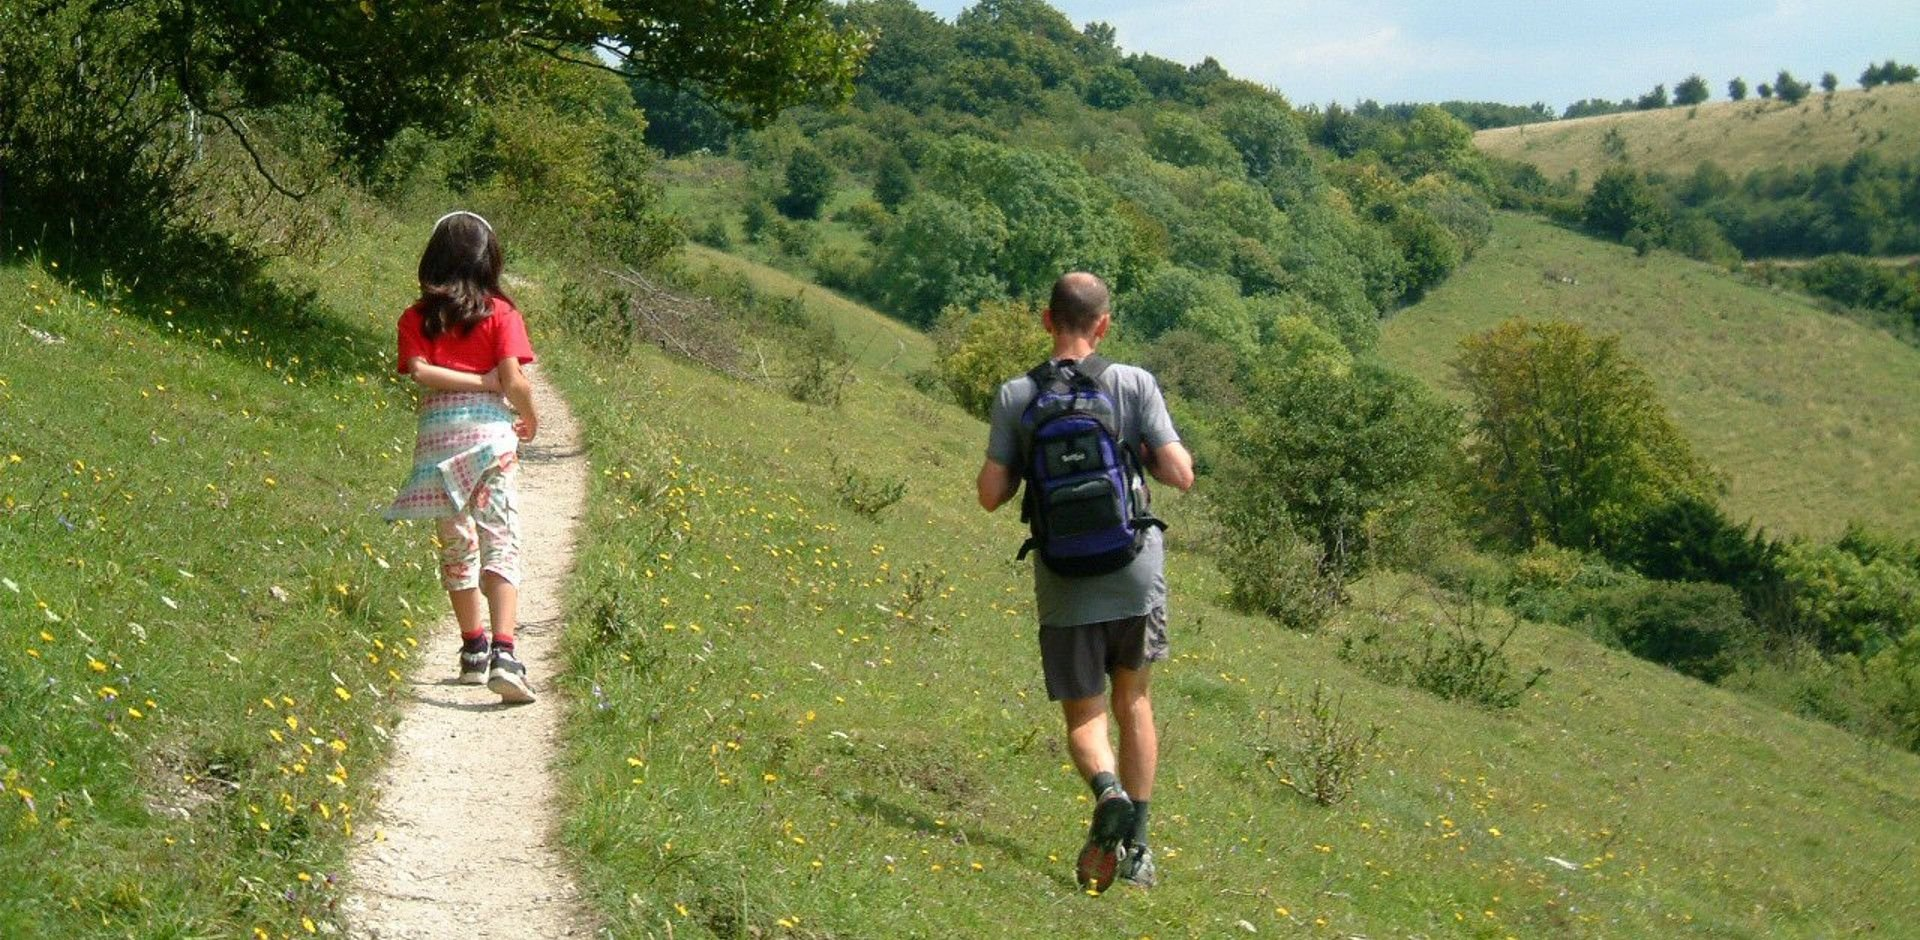 walkers at Aston Rowant 2 (Annette Venters)-tb.jpg